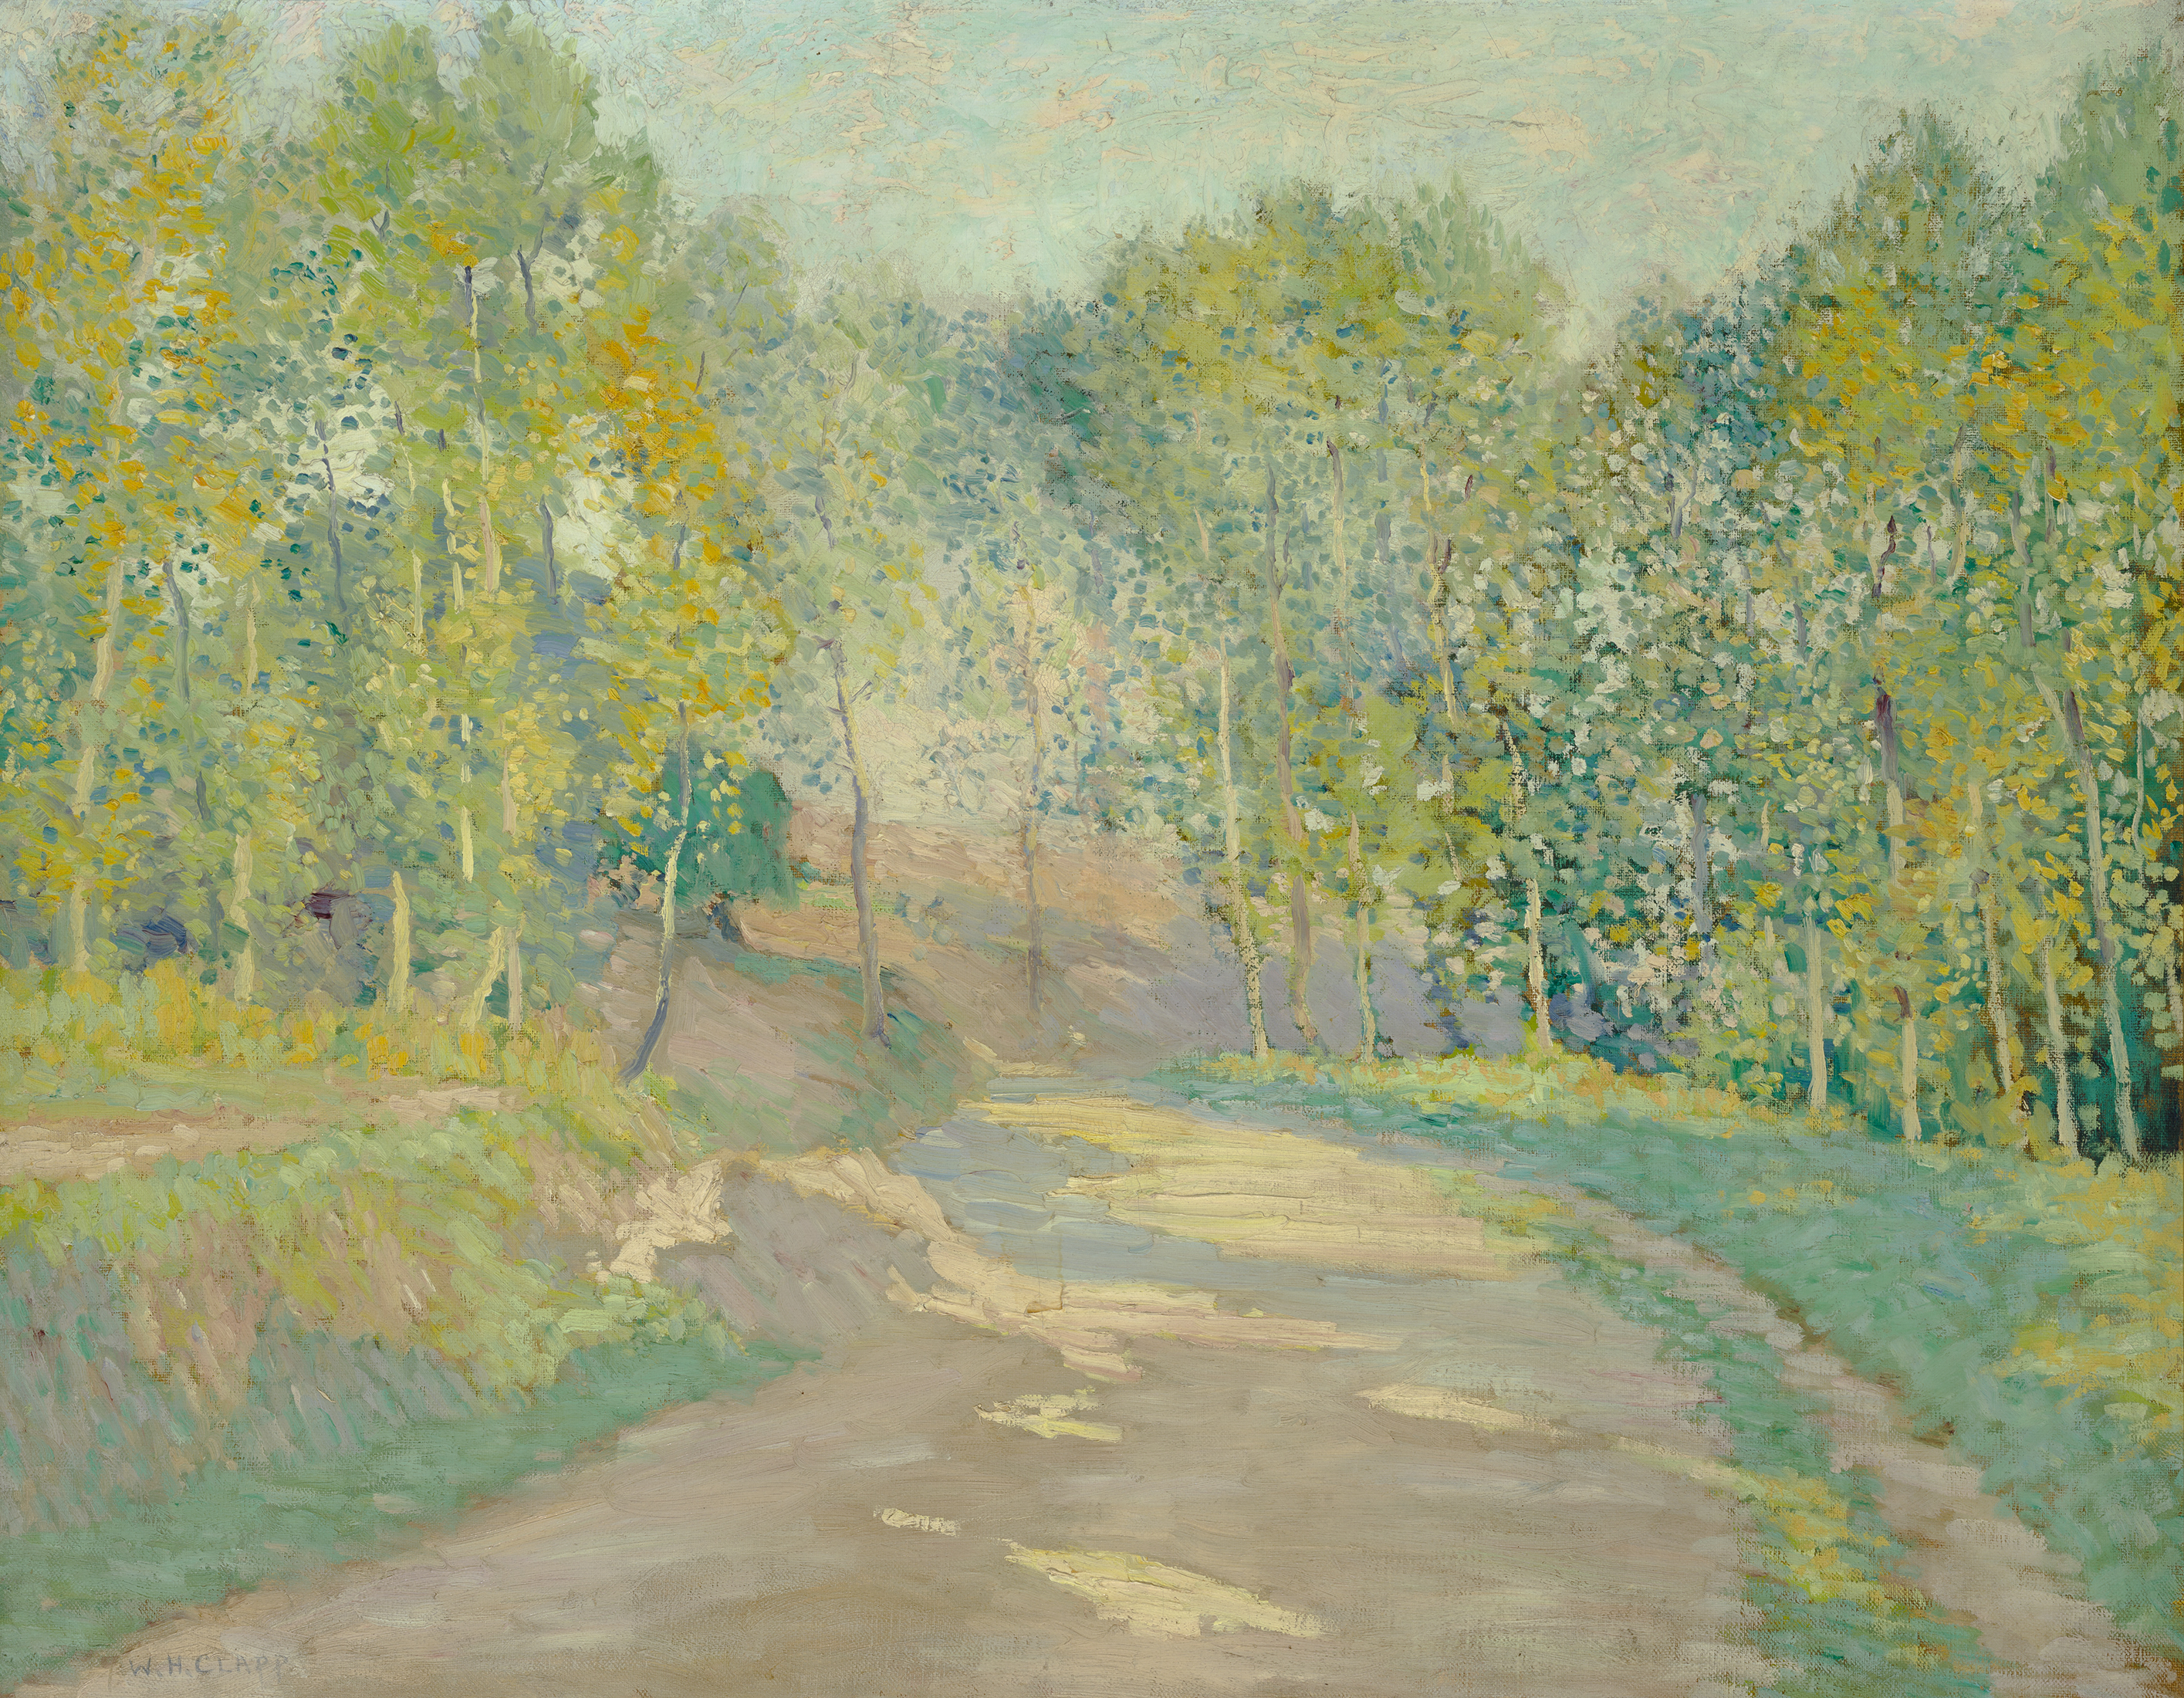 This oil on canvas presents a spring landscape under a light blue sky. The centre of the picture is occupied by a dirt road lined with green- and yellow-leaved trees whose sinuous shadows streak the path.